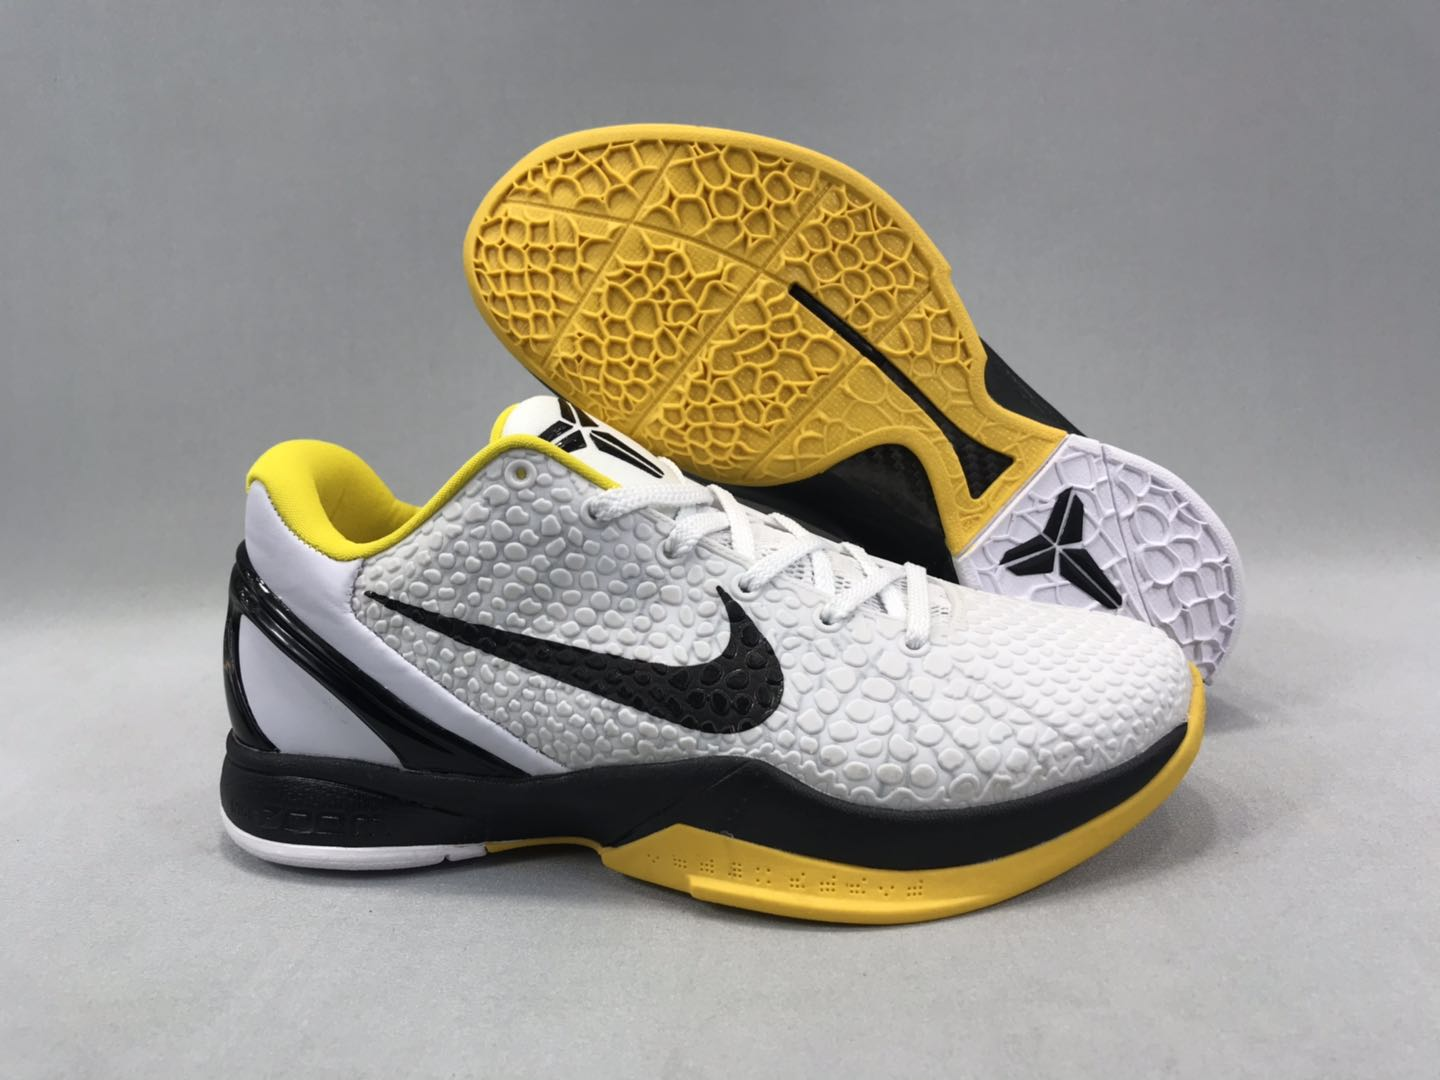 New-release Nike Kobe 8 White Black Yellow Shoes